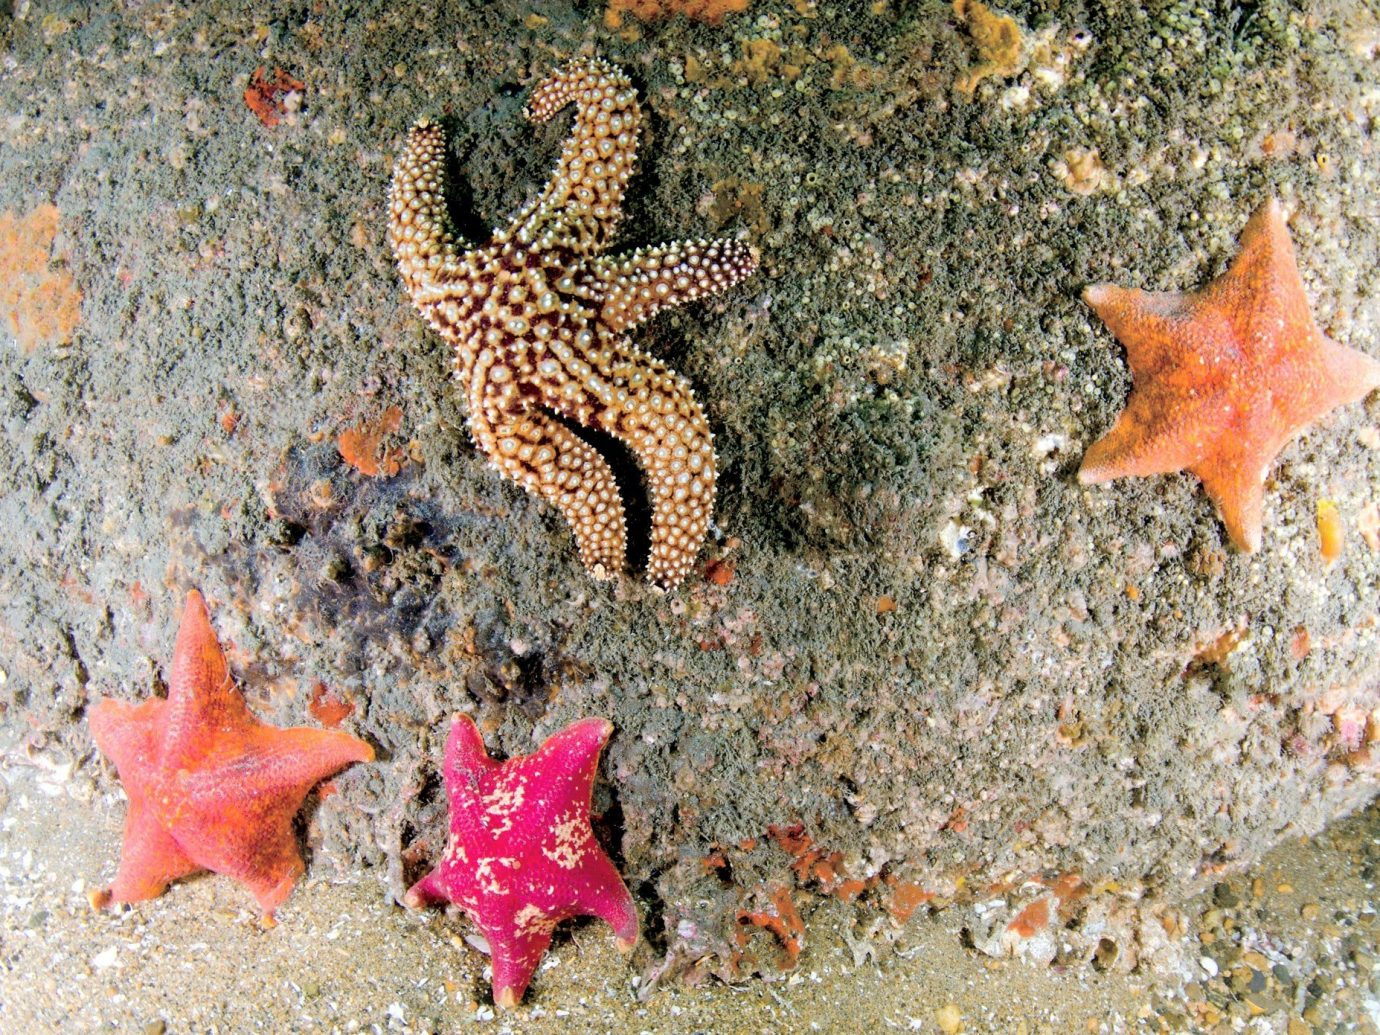 Hotels starfish animal echinoderm marine biology outdoor fauna marine invertebrates invertebrate biology coral